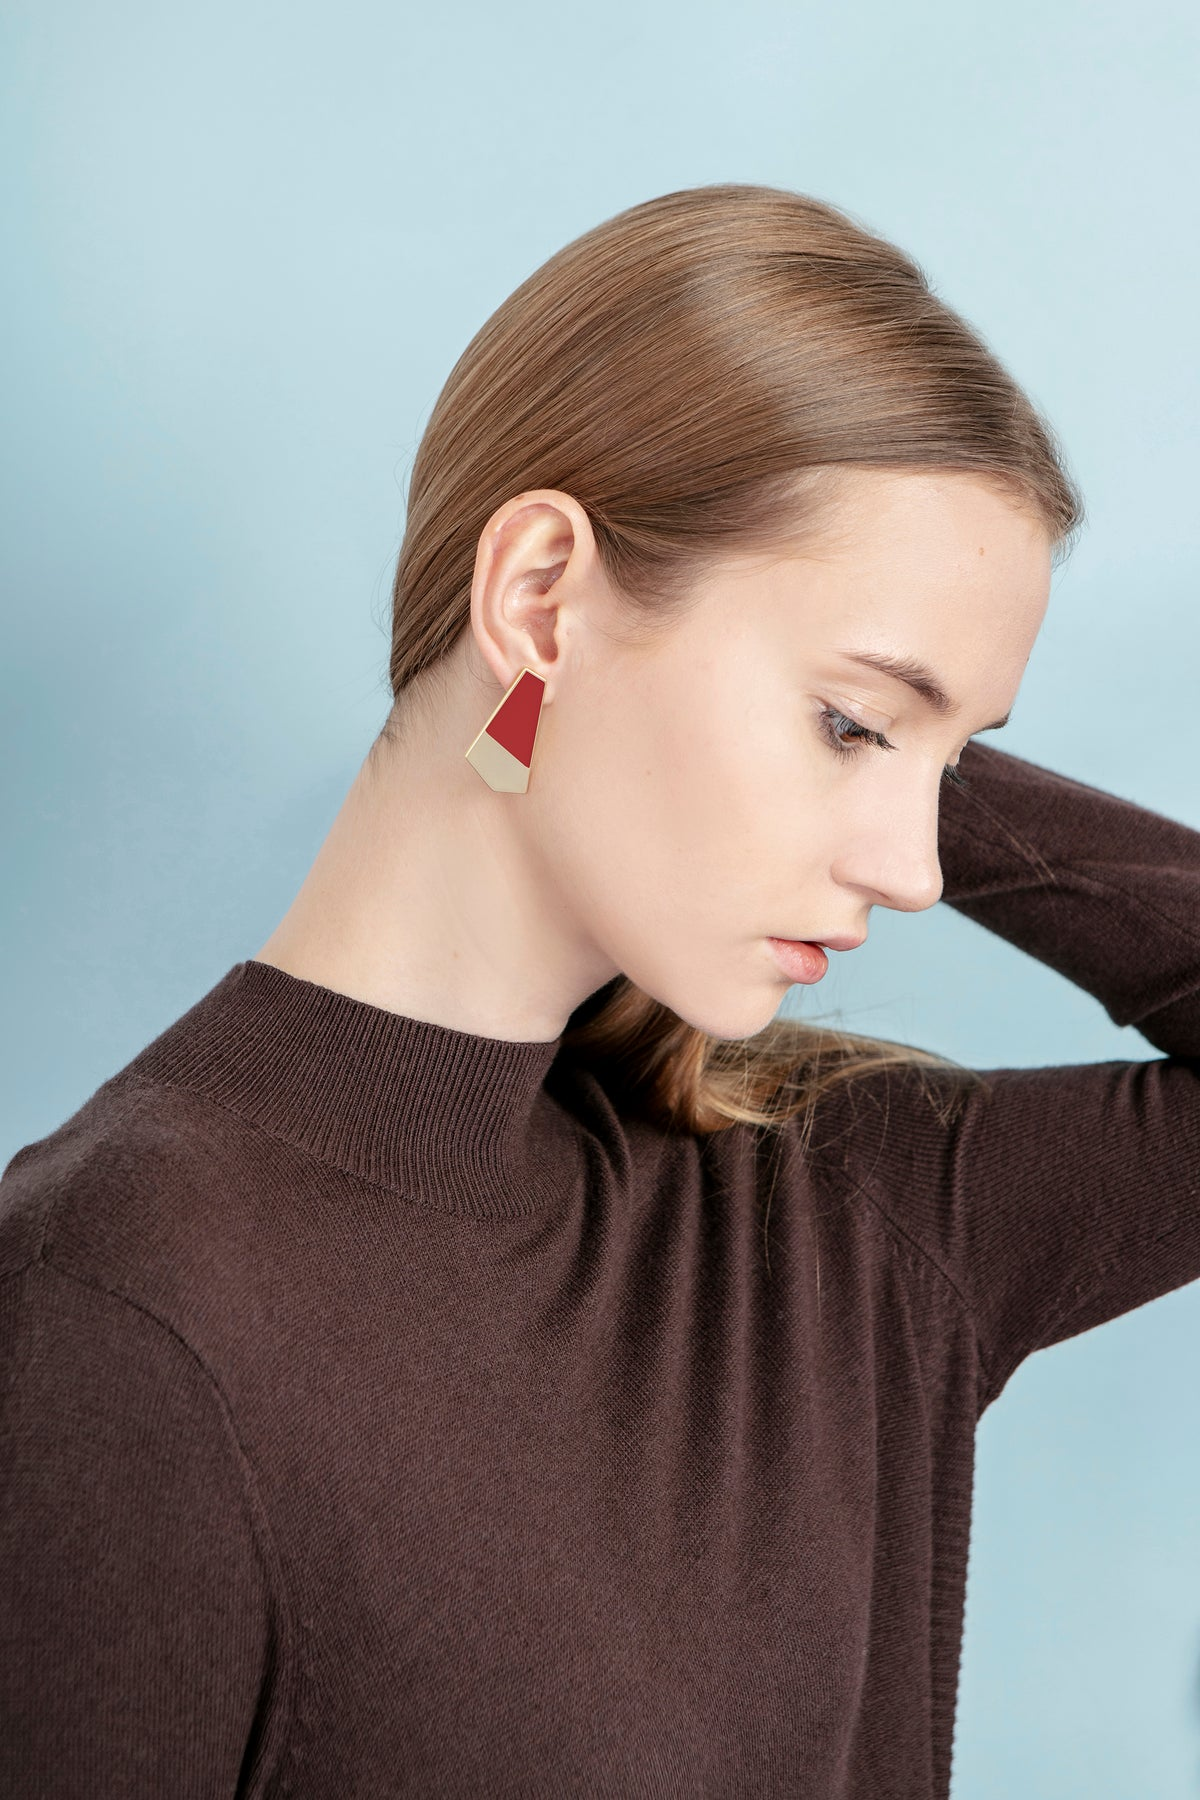 Image of Turi Earrings • Stainless steel • Silver • Red / Beige